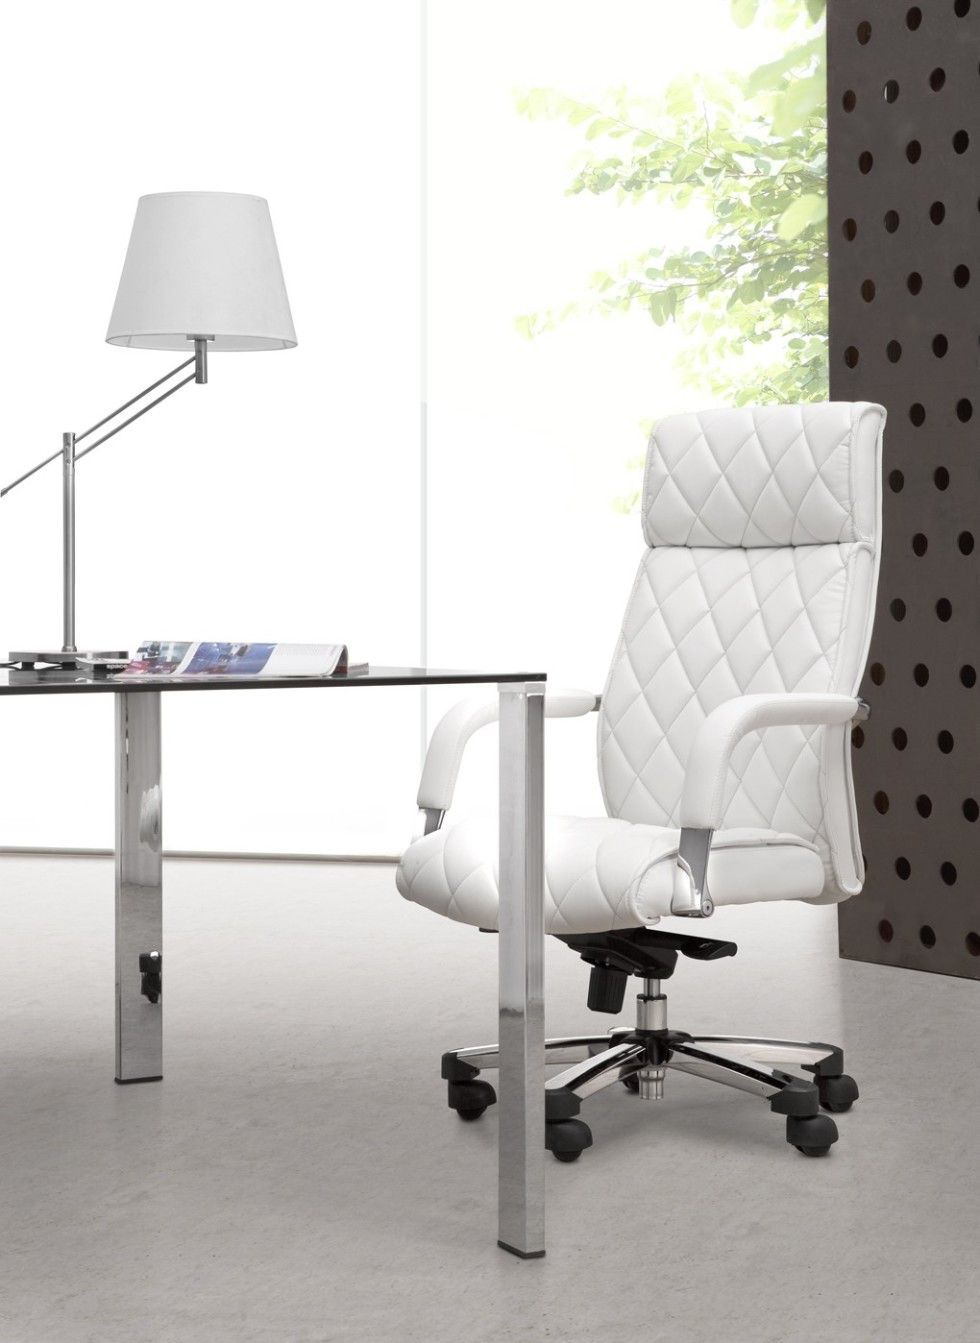 Minimalist Desk Chair Furniture Luxurious White Leather Swivel Chair With Minimalist